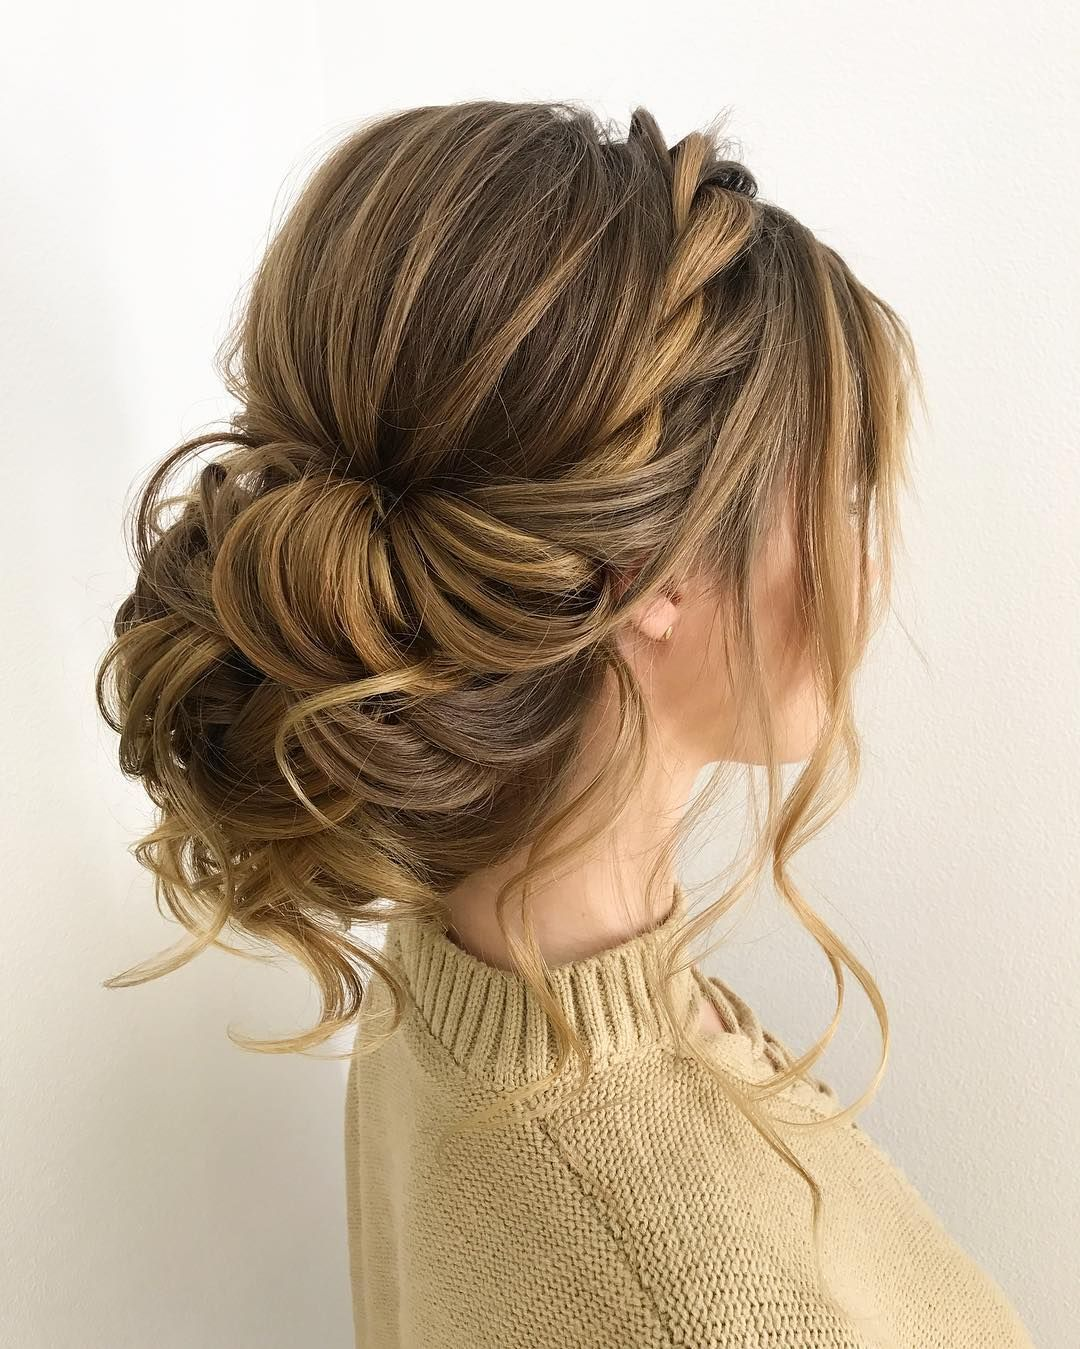 Gorgeous wedding updo hairstyles that will wow your big day twisted wedding updos for medium length hairwedding updosupdo hairstylesprom hairstyles junglespirit Choice Image